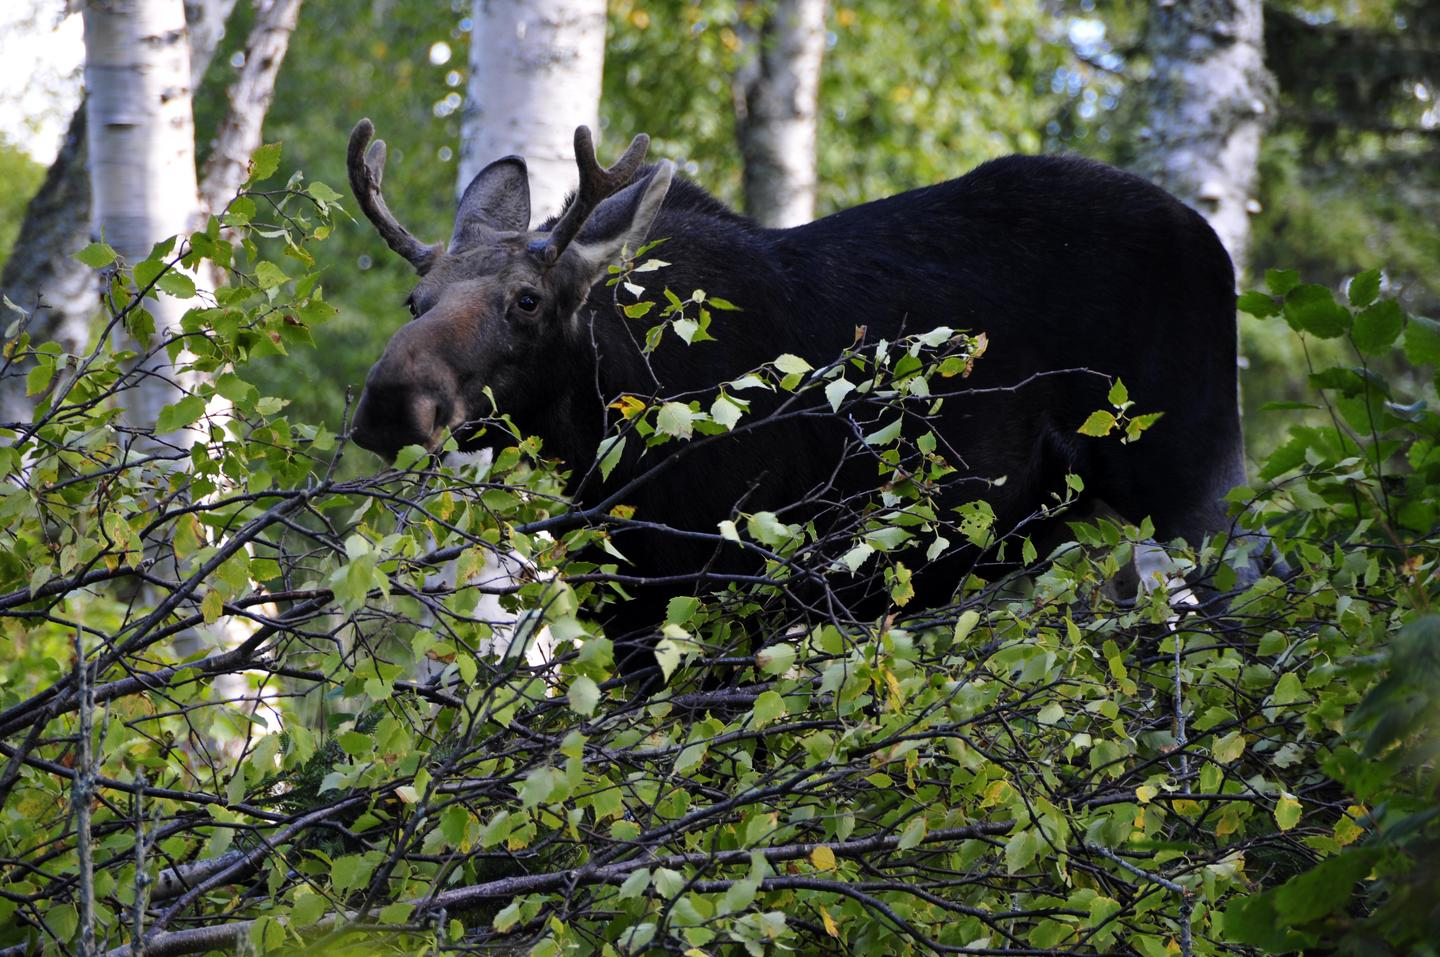 Bull MooseMoose are one of the few mammal species who have journeyed to the island.